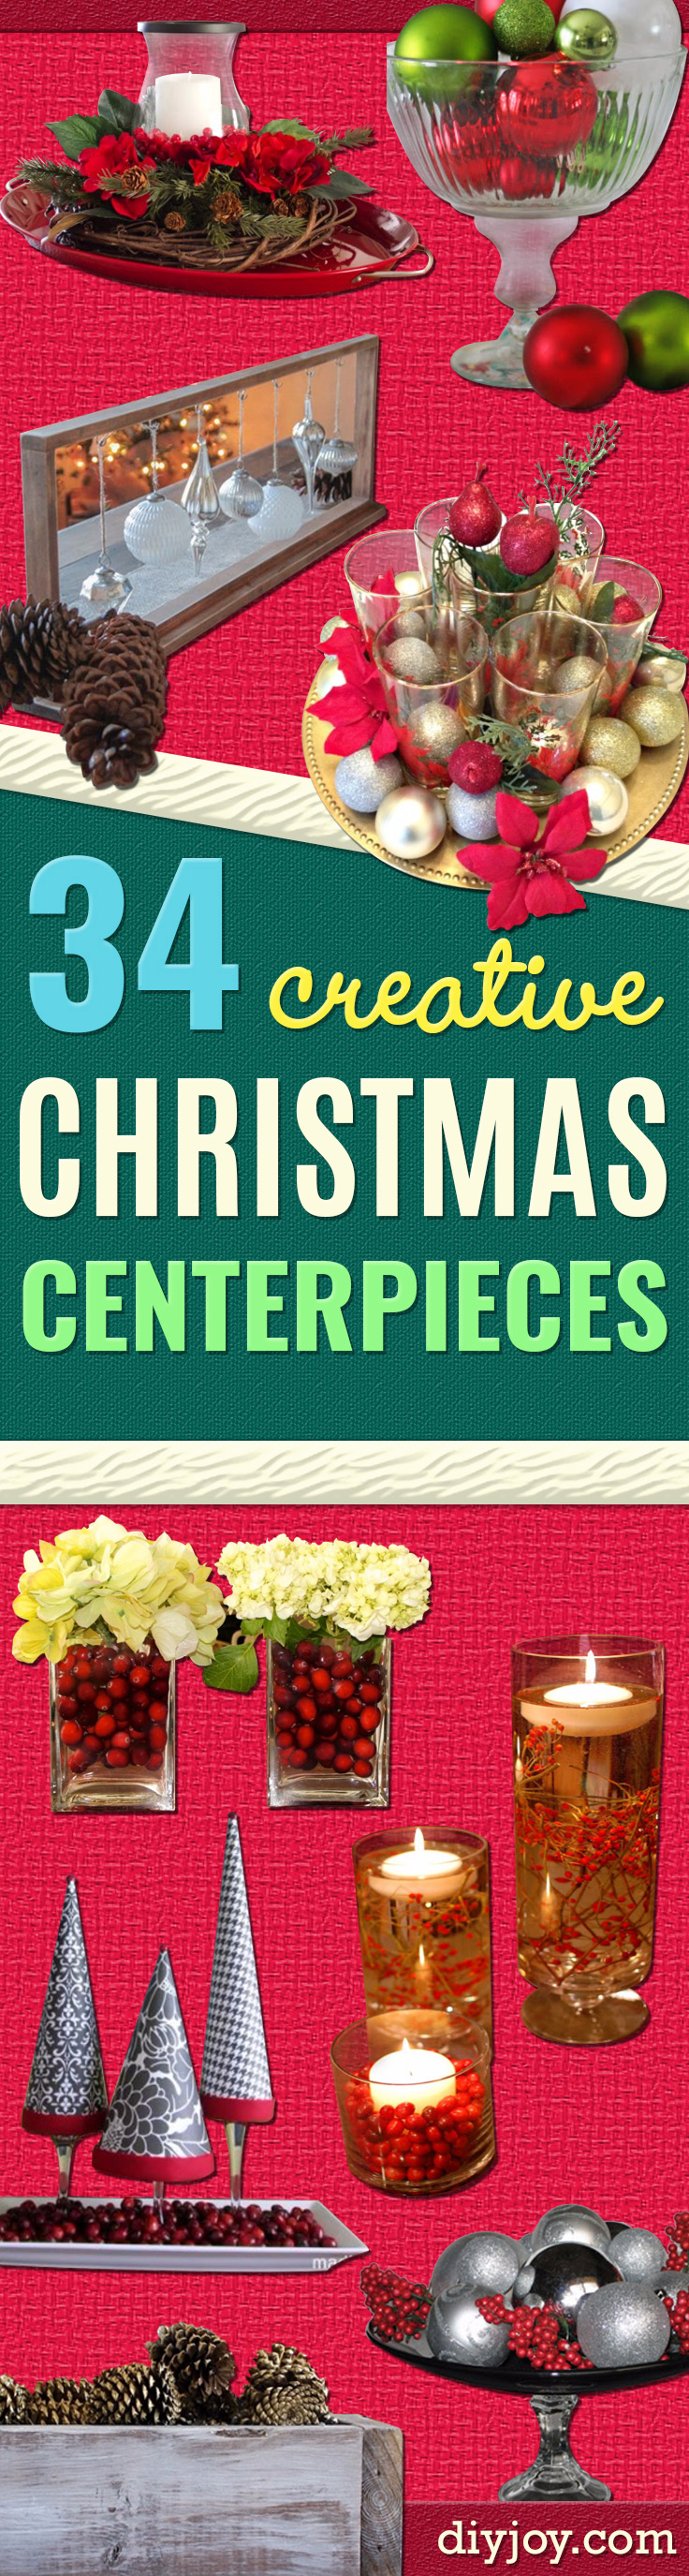 diy christmas centerpiece ideas - Simple, Easy Holiday Decorating Ideas on A Budget - Cheap Home and Table Decor for christmas centerpieces diy #diy #christmas